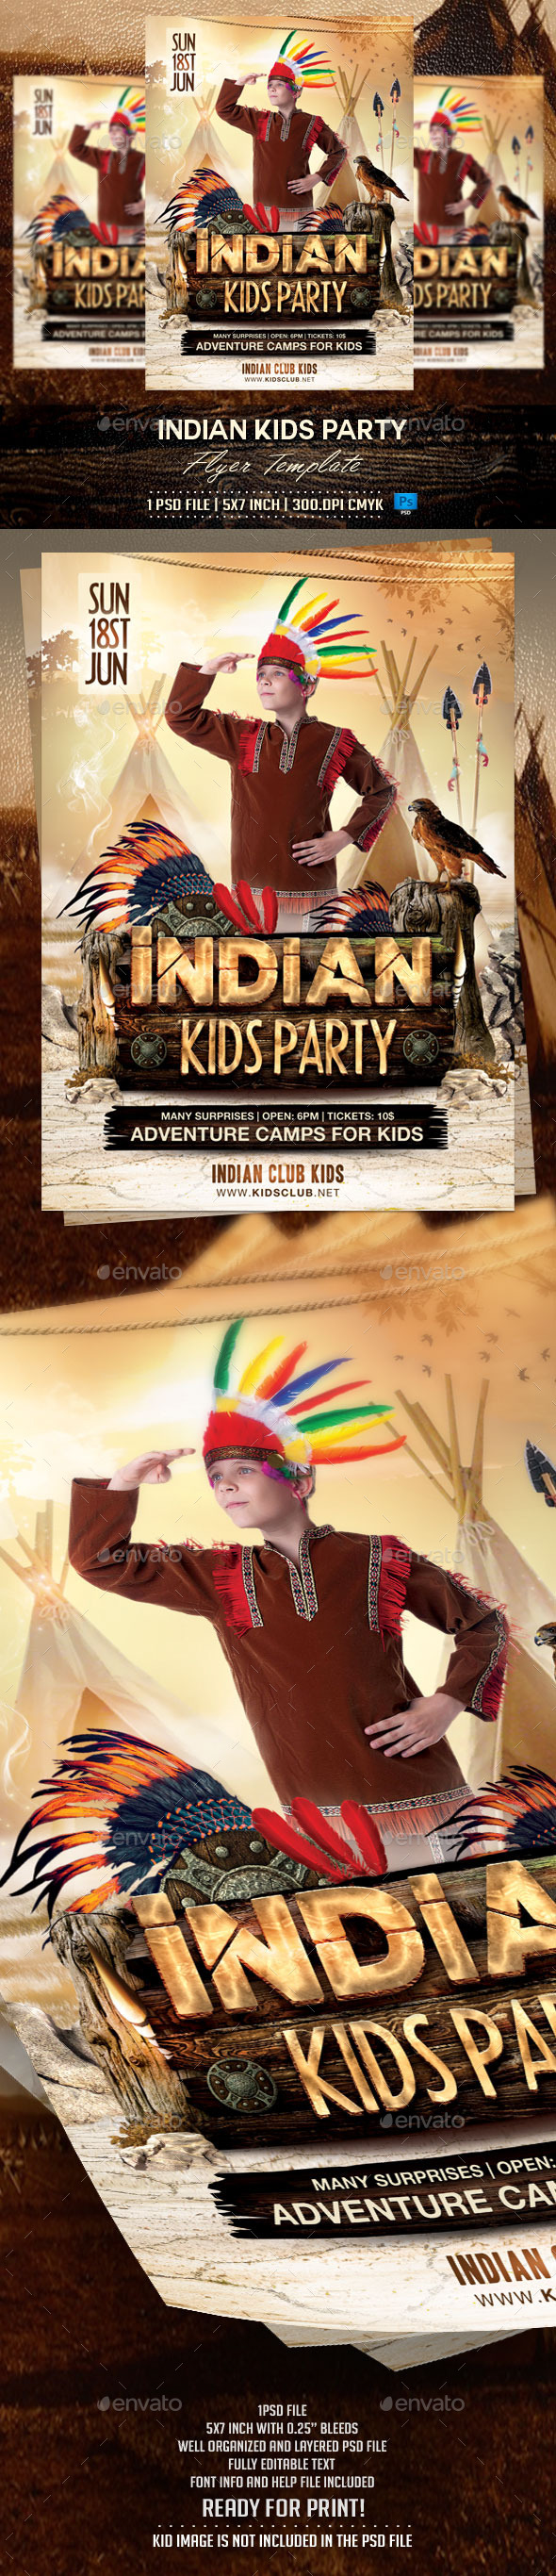 Indian Kids Party Flyer Template - Flyers Print Templates